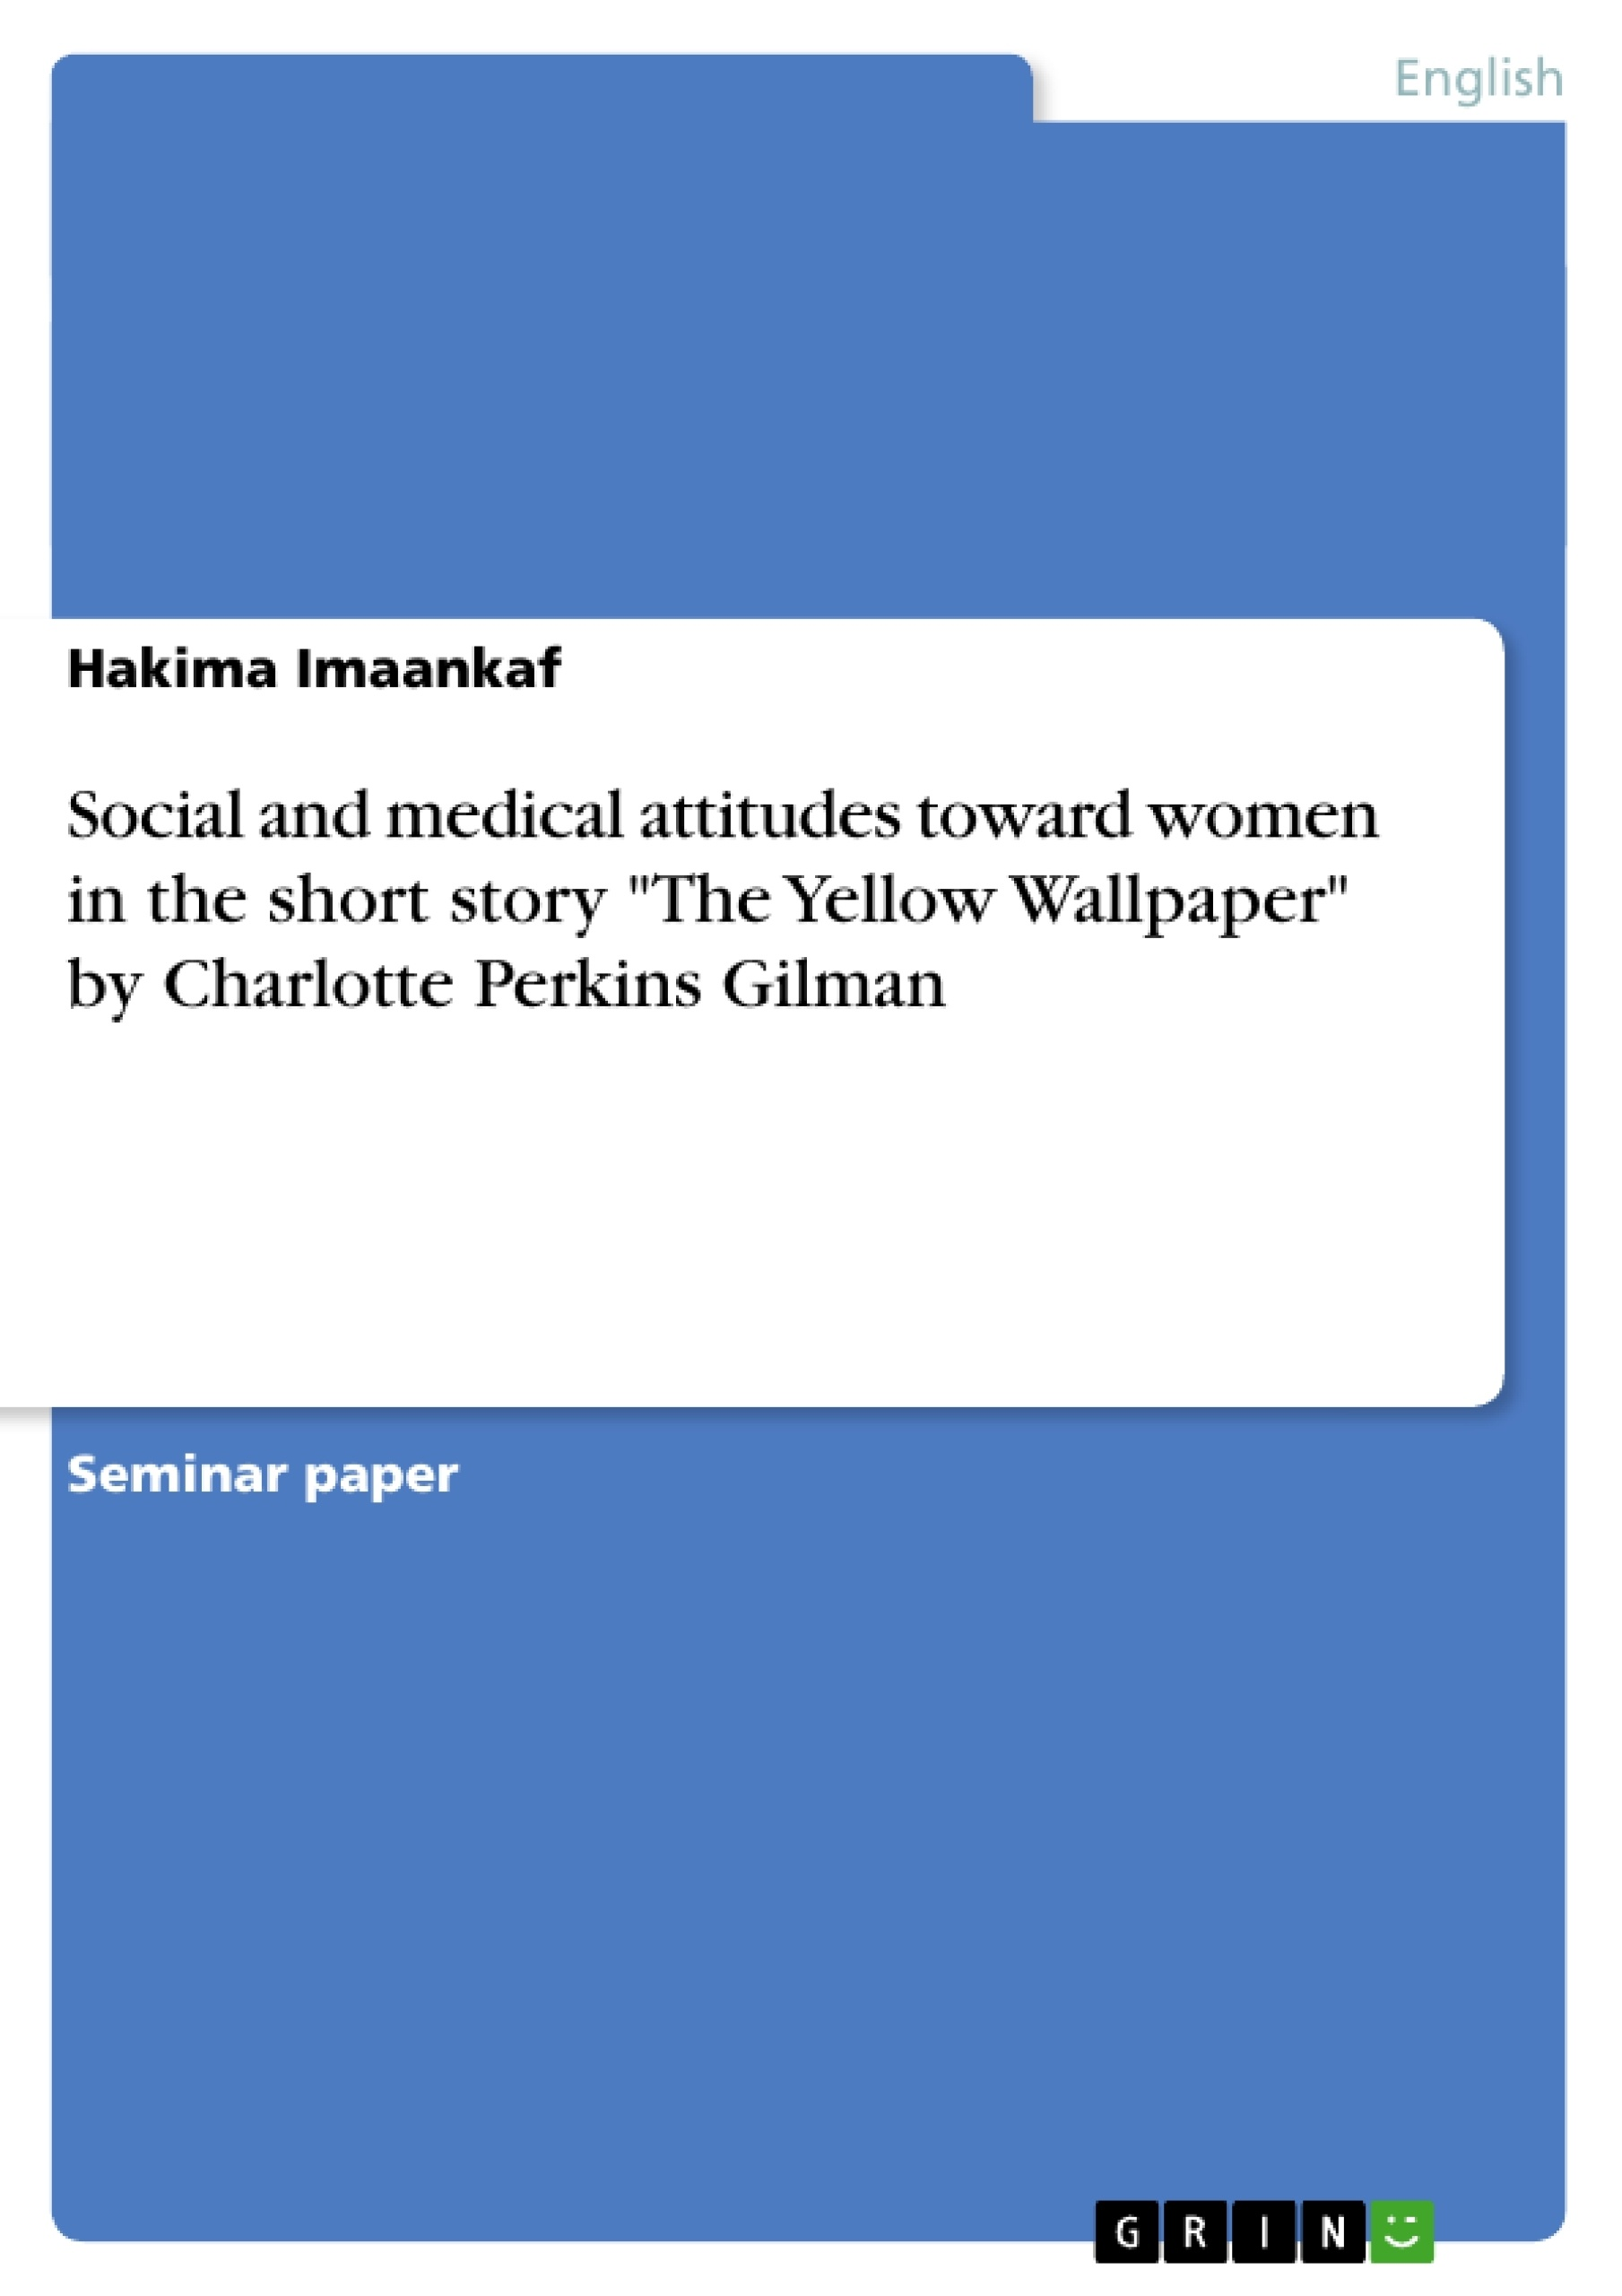 """Title: Social and medical attitudes toward women in the short story """"The Yellow Wallpaper"""" by Charlotte Perkins Gilman"""